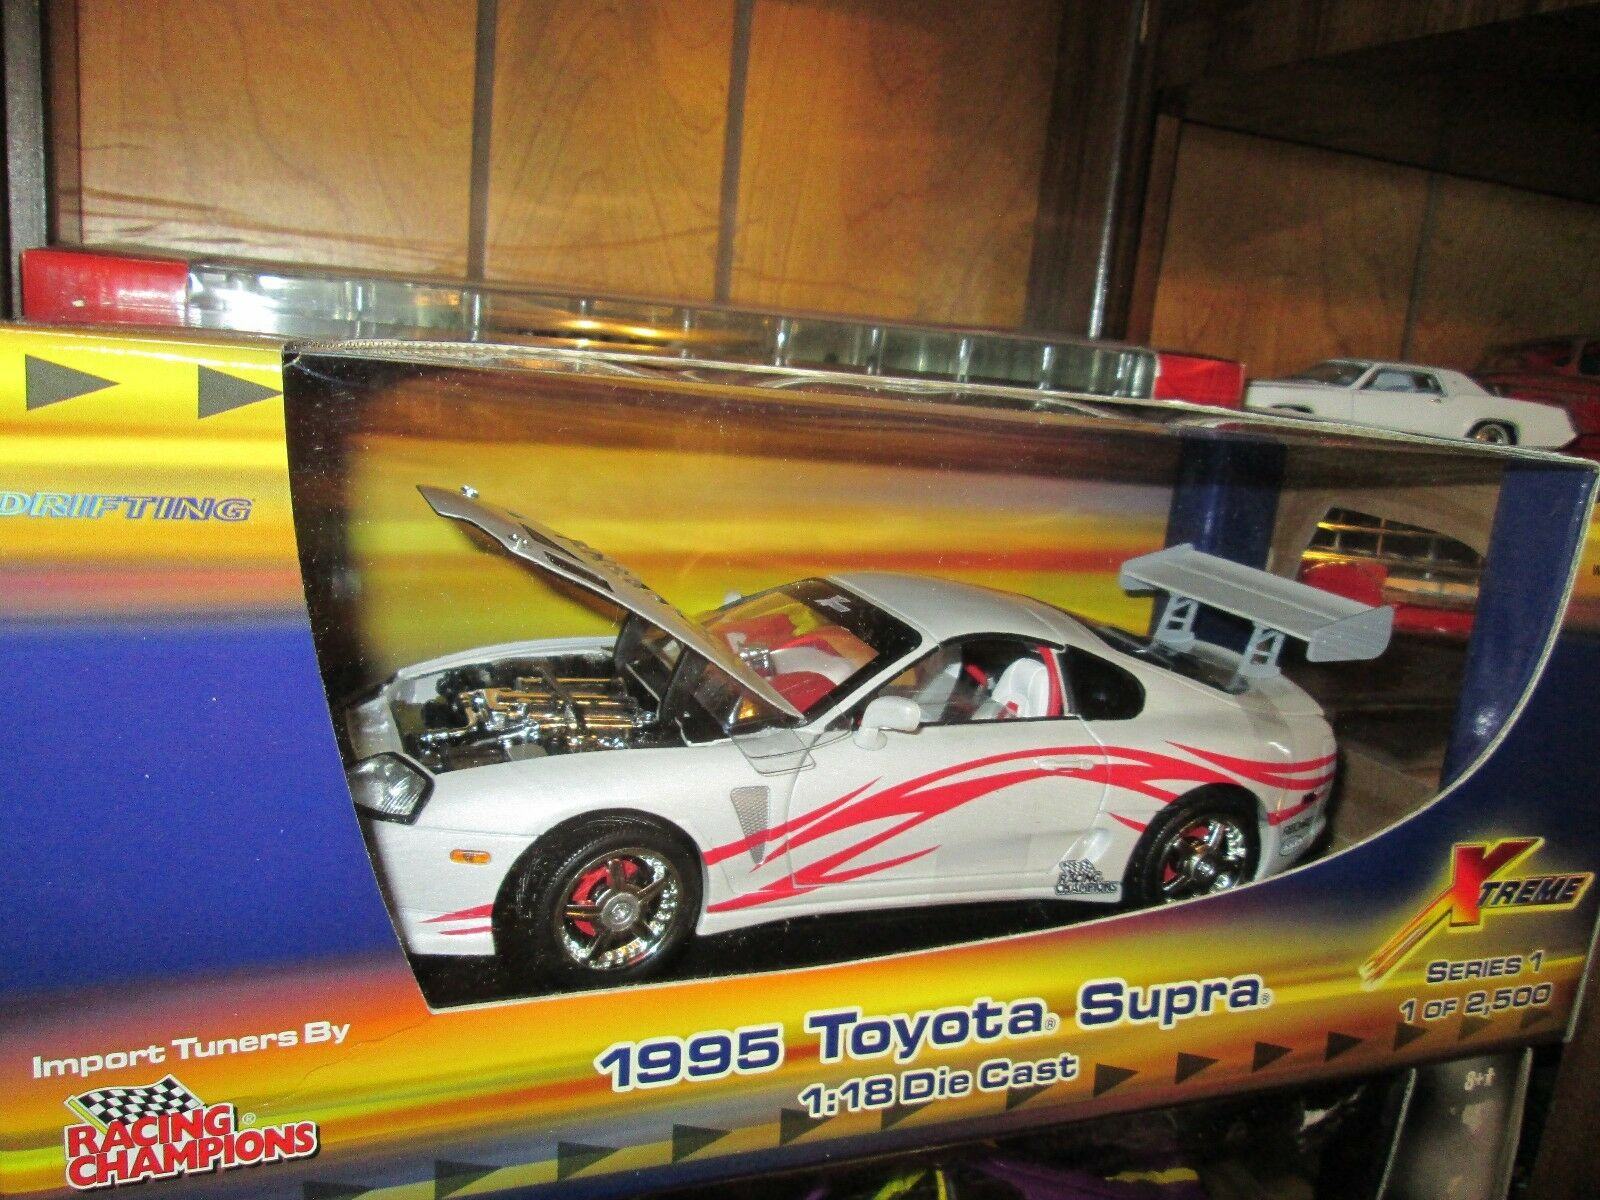 95 TOYOTA SUPRA DRIFTING 1995 1 18 ERTL AMERICAN MUSCLE STREET TUNER 1 of 2500